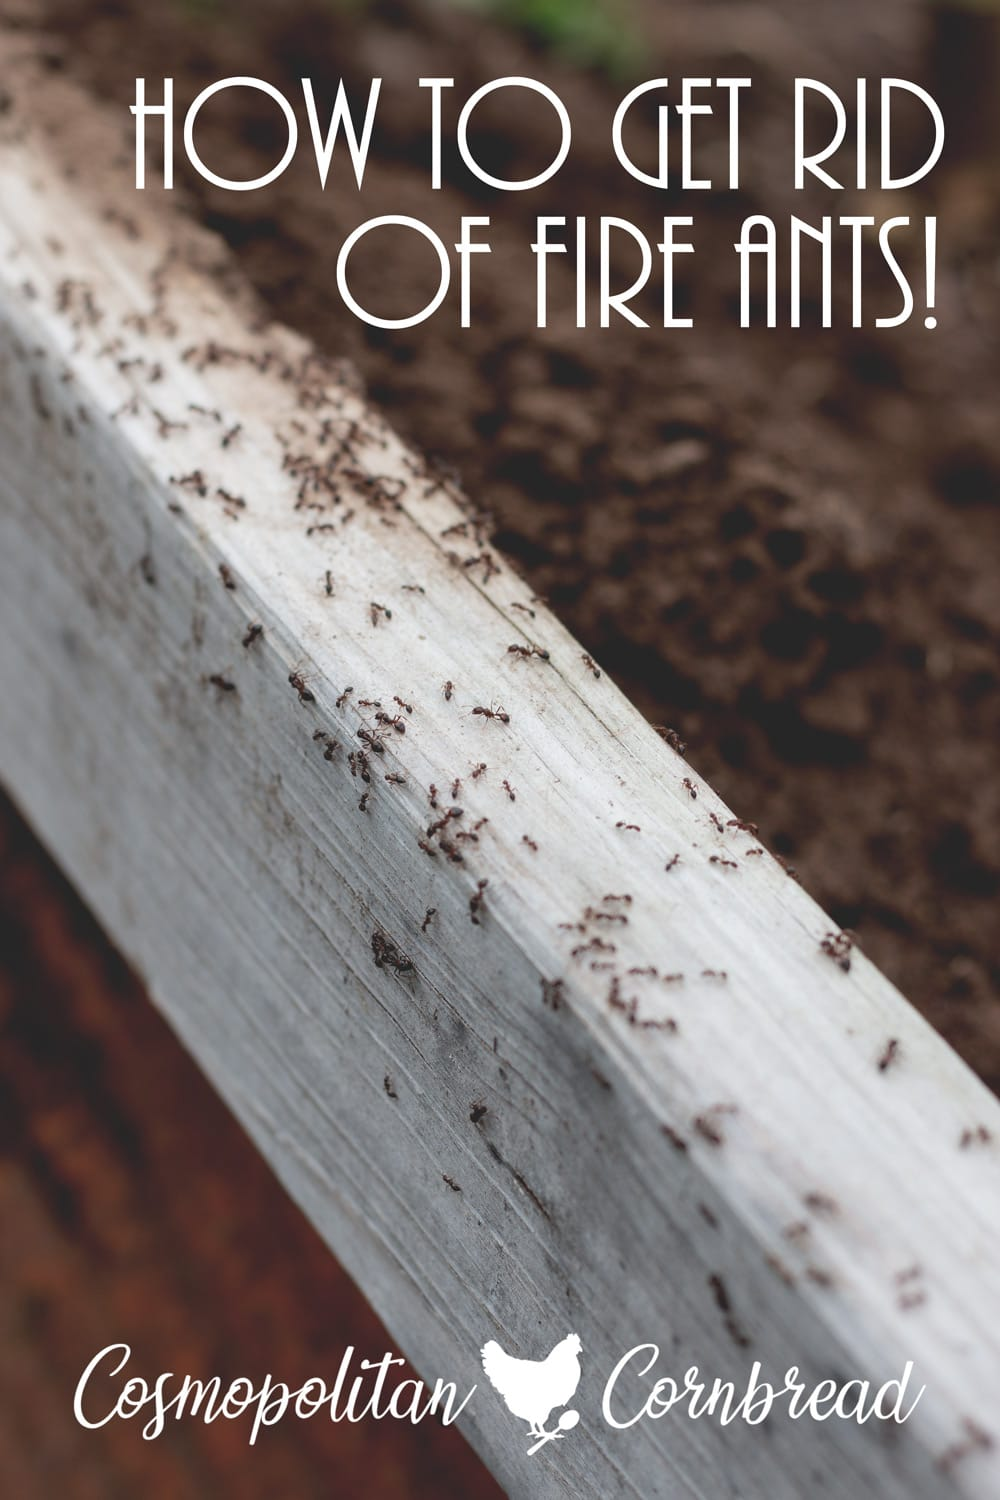 How to Get Rid of Fire Ants - Flower Beds, Garden Beds or even the Yard. Safely and Naturally. Find out how on Cosmopolitan Cornbread.